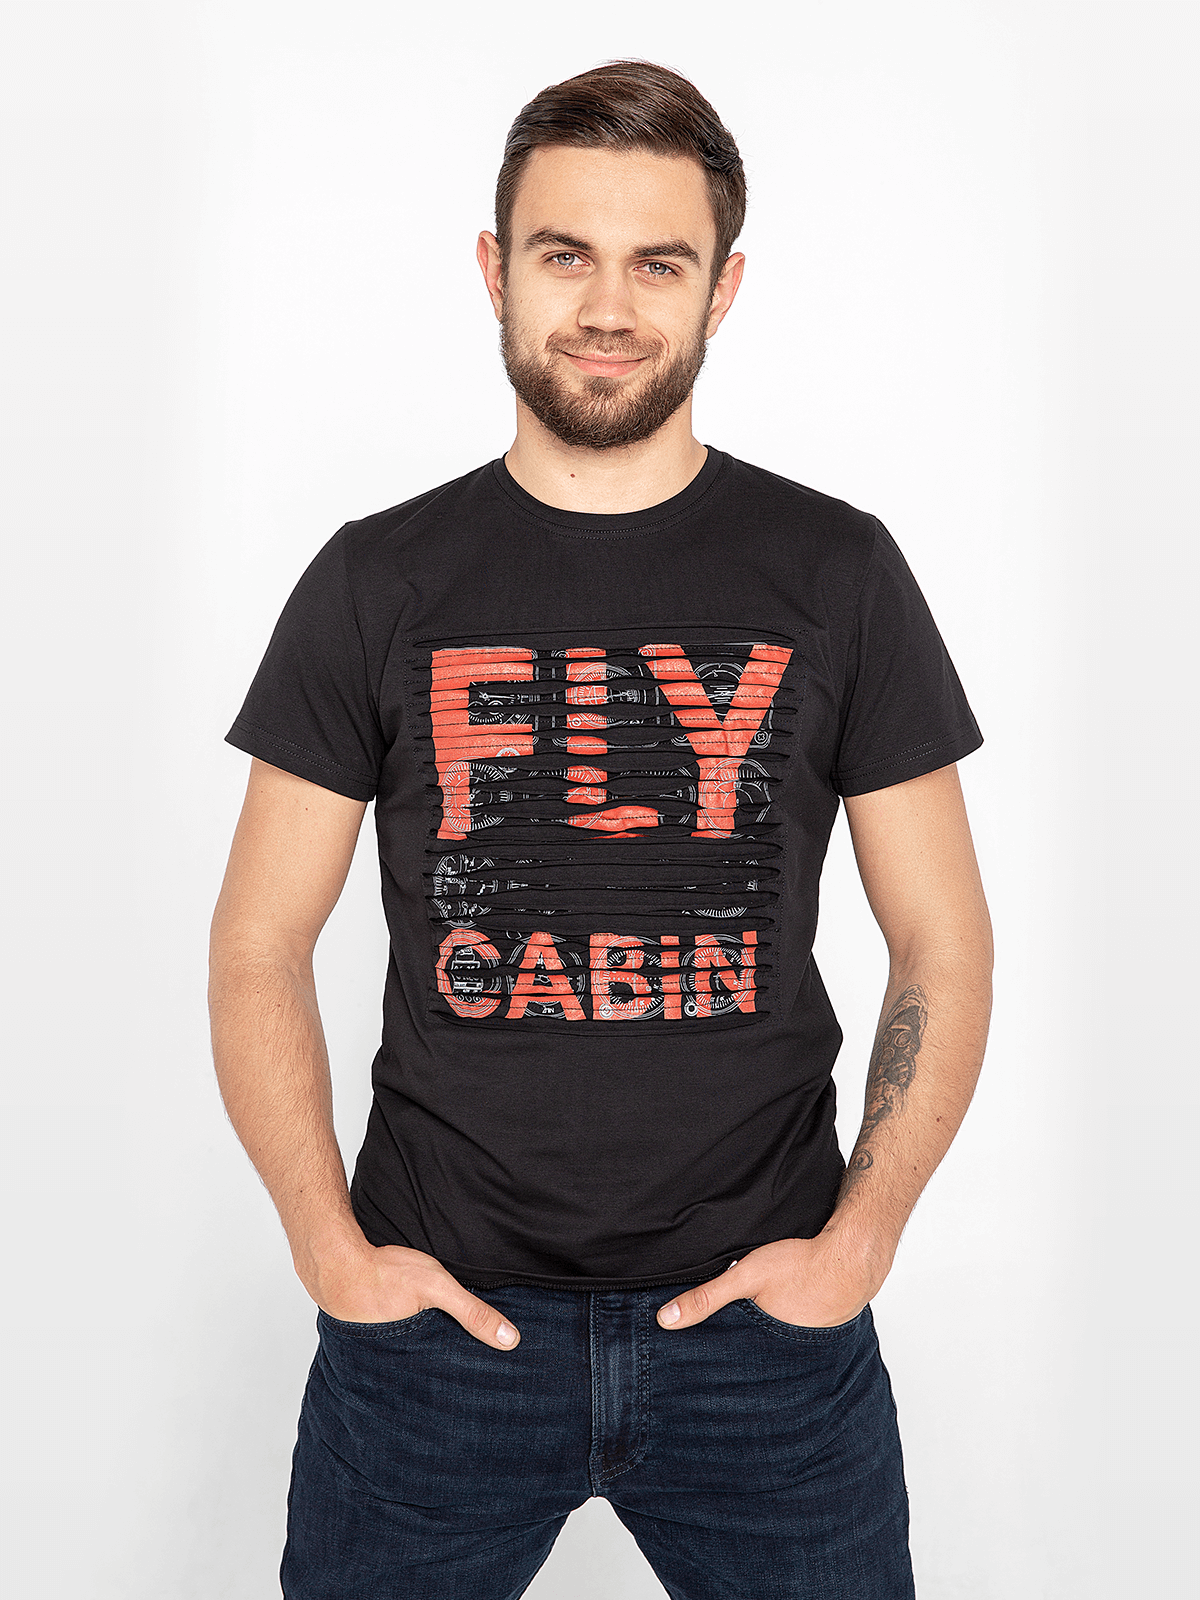 Men's T-Shirt Fly Cabin. Color black. Unisex T-shirt (men's sizes).